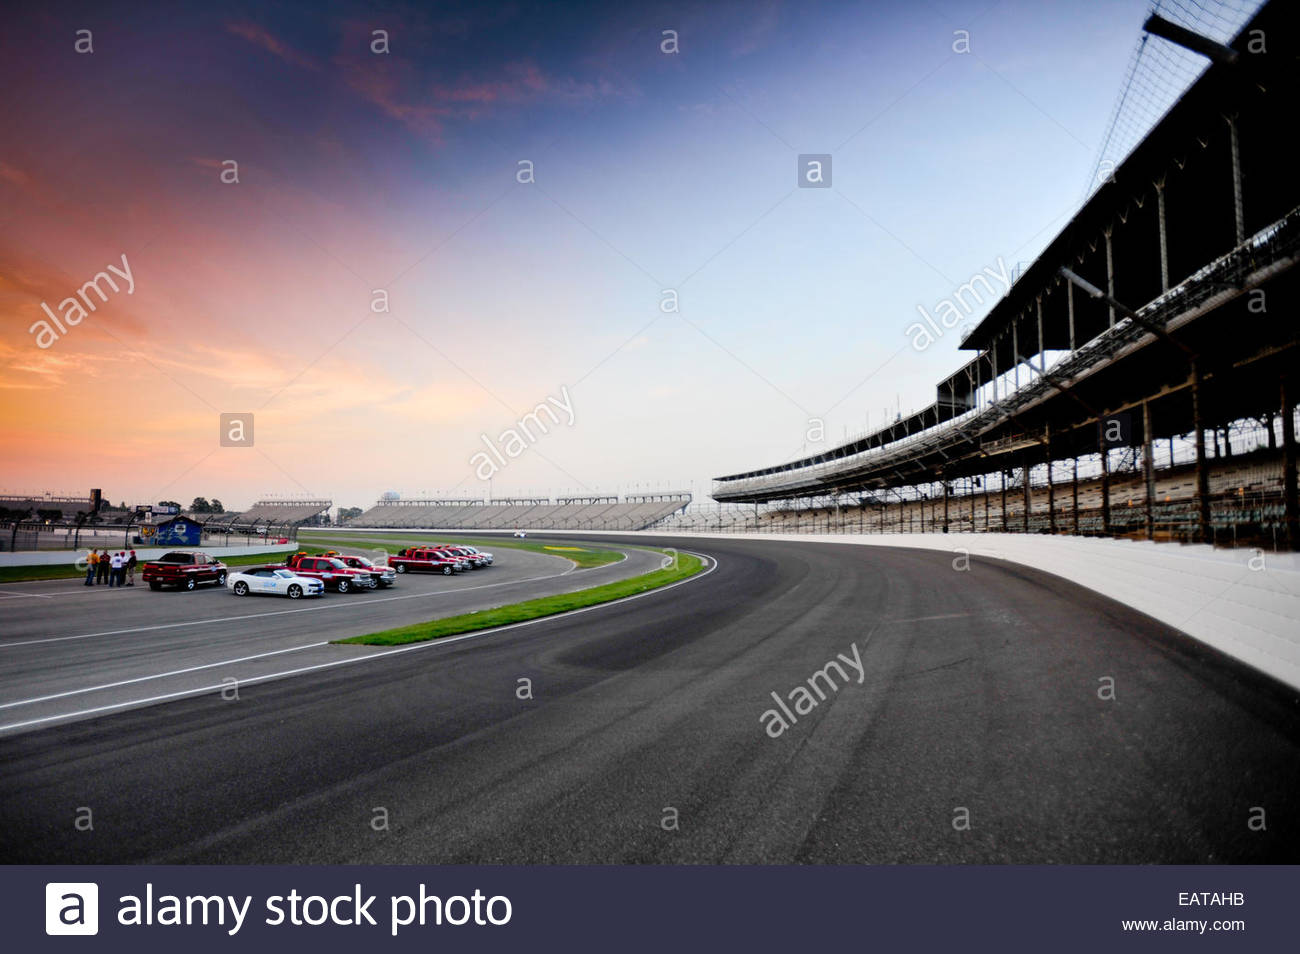 Turn one of the Indianapolis Motor Speedway at sunrise - Stock Image